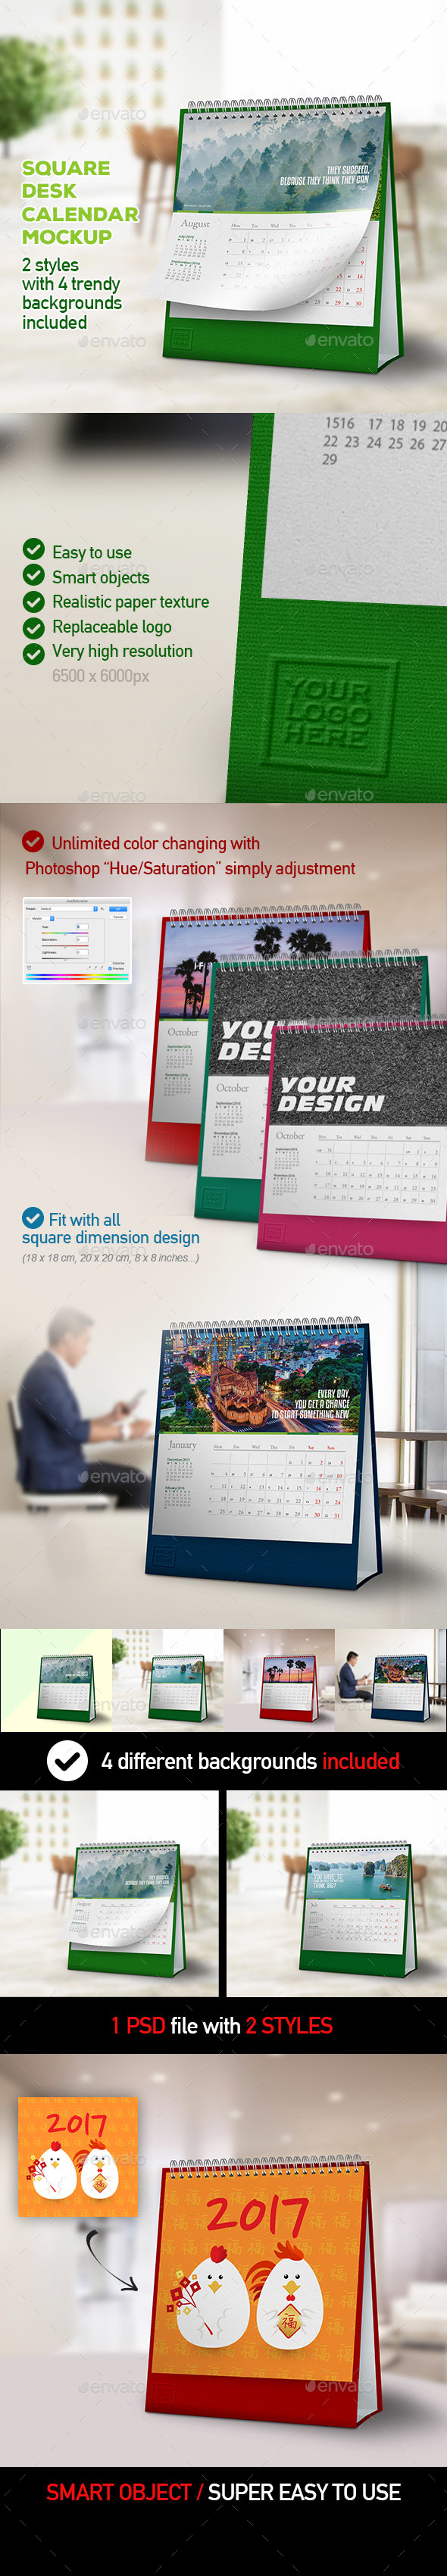 Desk Calendar Mockups - Square Dimension with 2 Styles & 4 Backgrounds